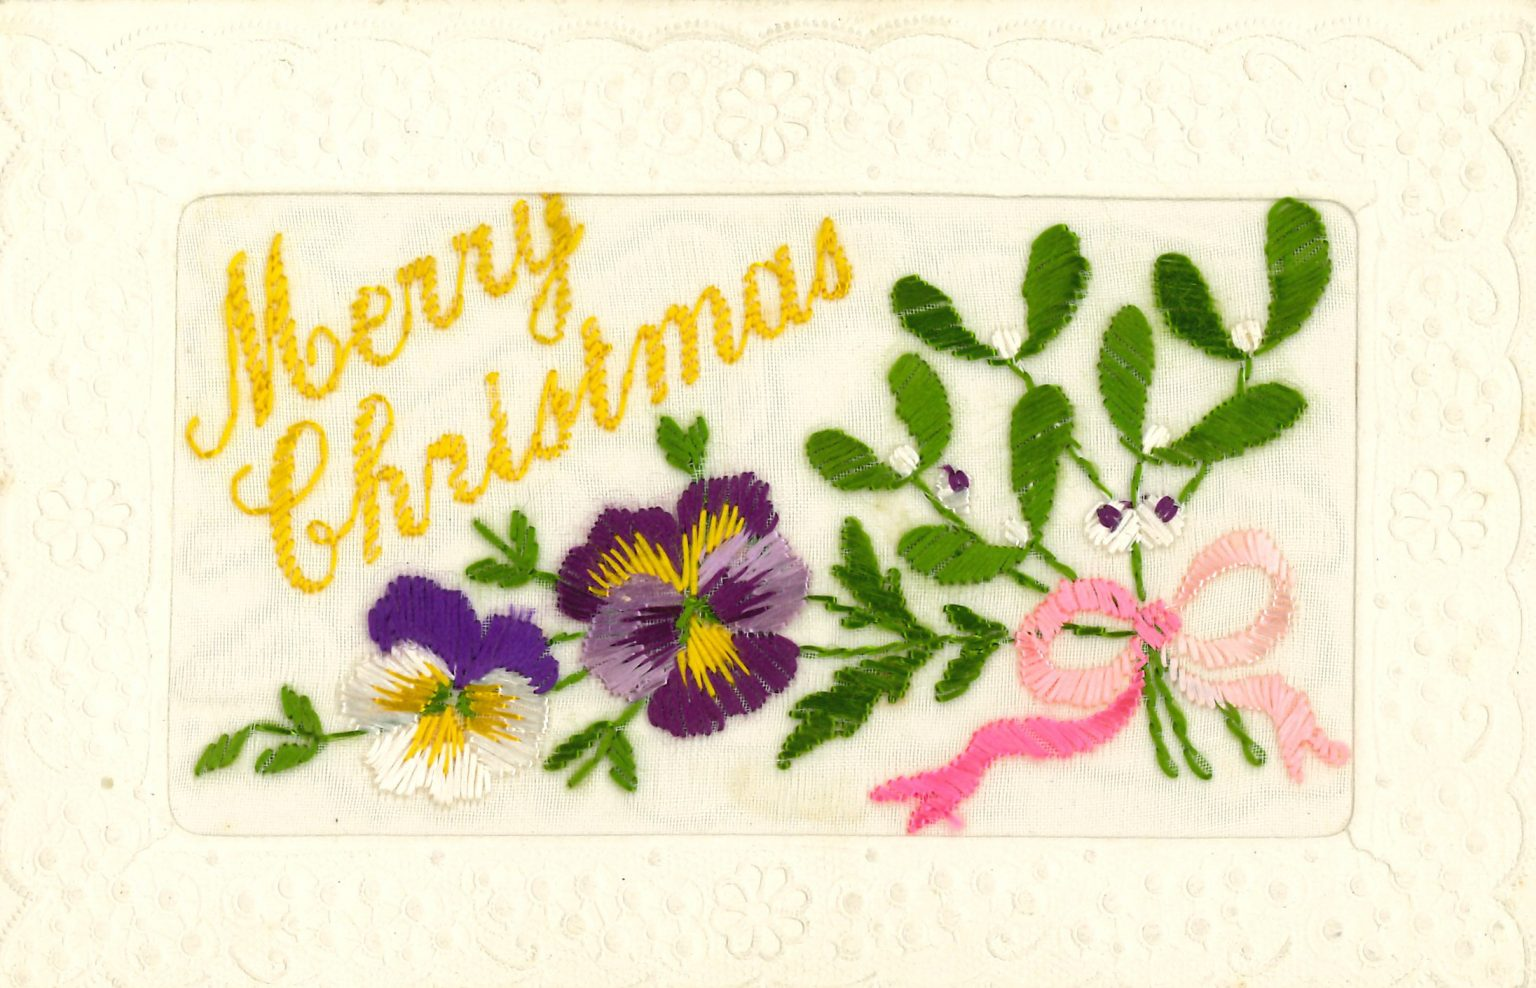 An embroidered Christmas card sent during World War I